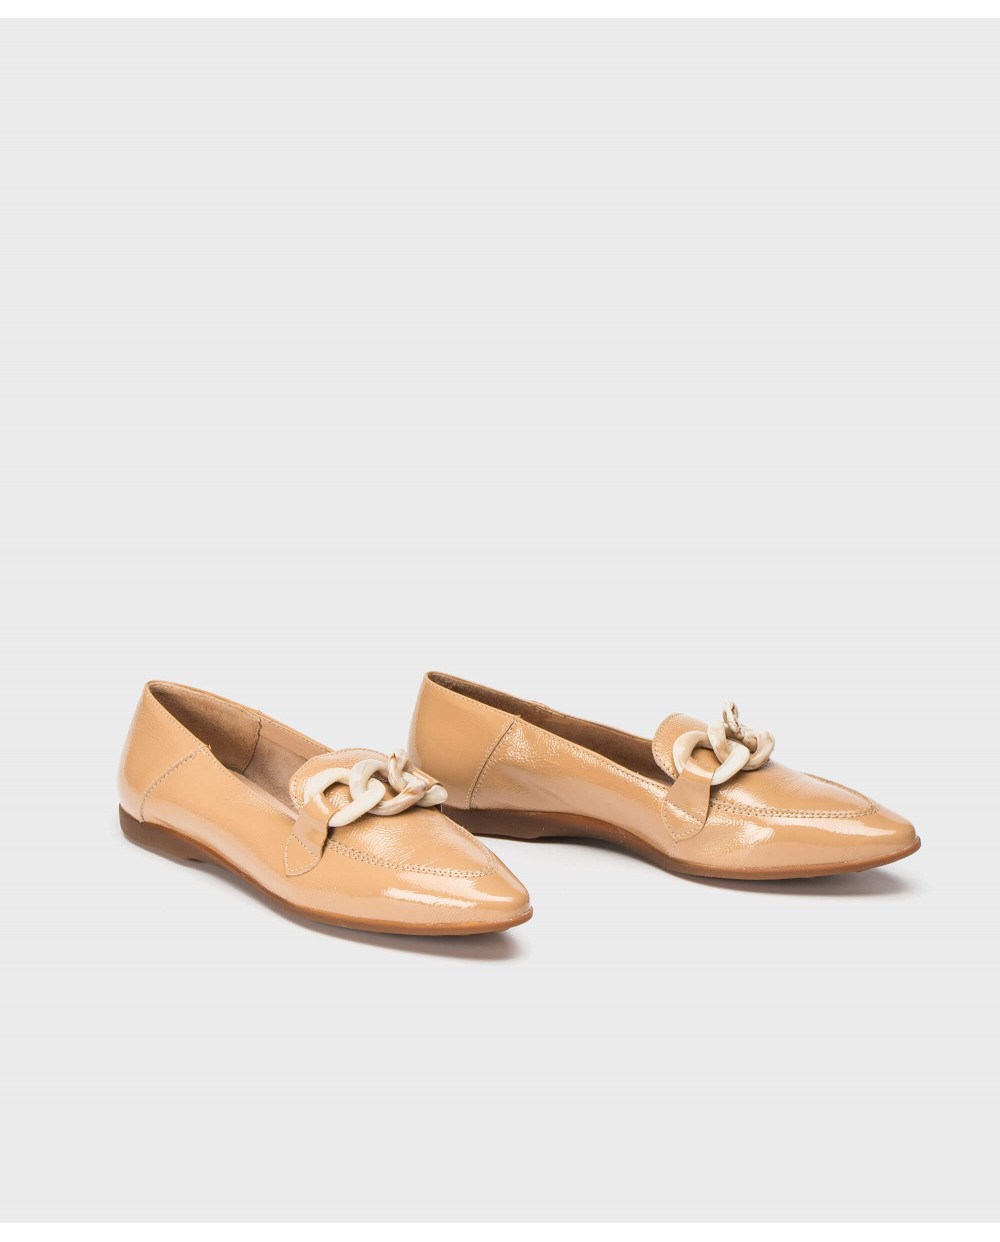 Wonders-Outlet-Moccasin inspired ballet pump